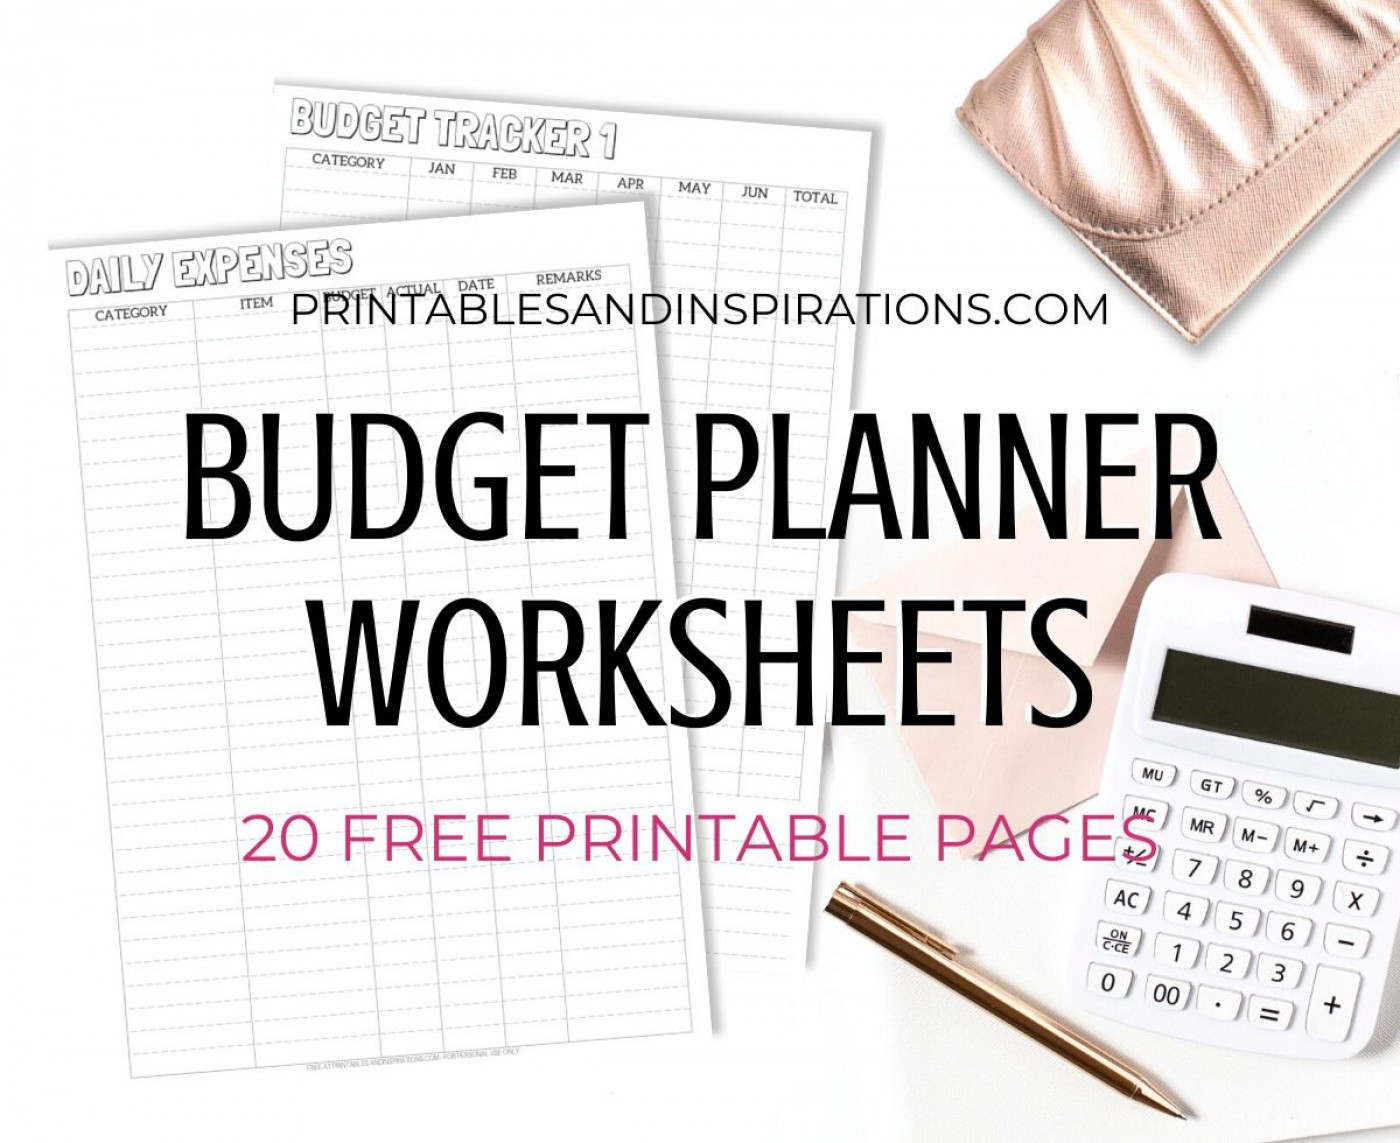 003 Astounding Free Printable Home Budget Form Image  Spreadsheet Template1400